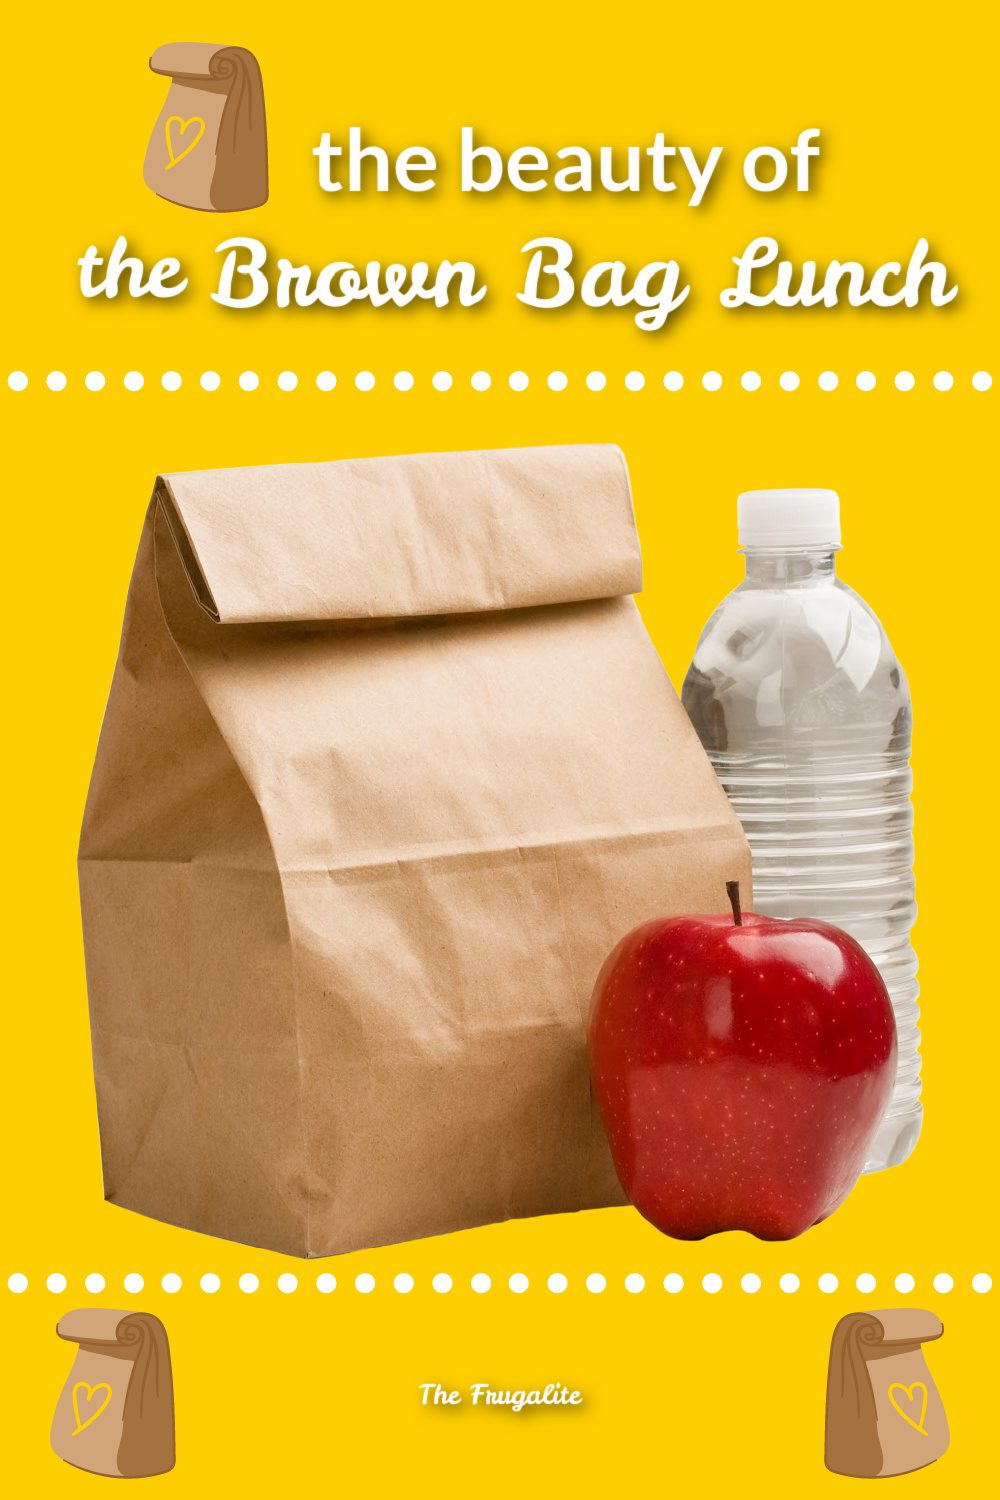 The Beauty of the Brown Bag Lunch